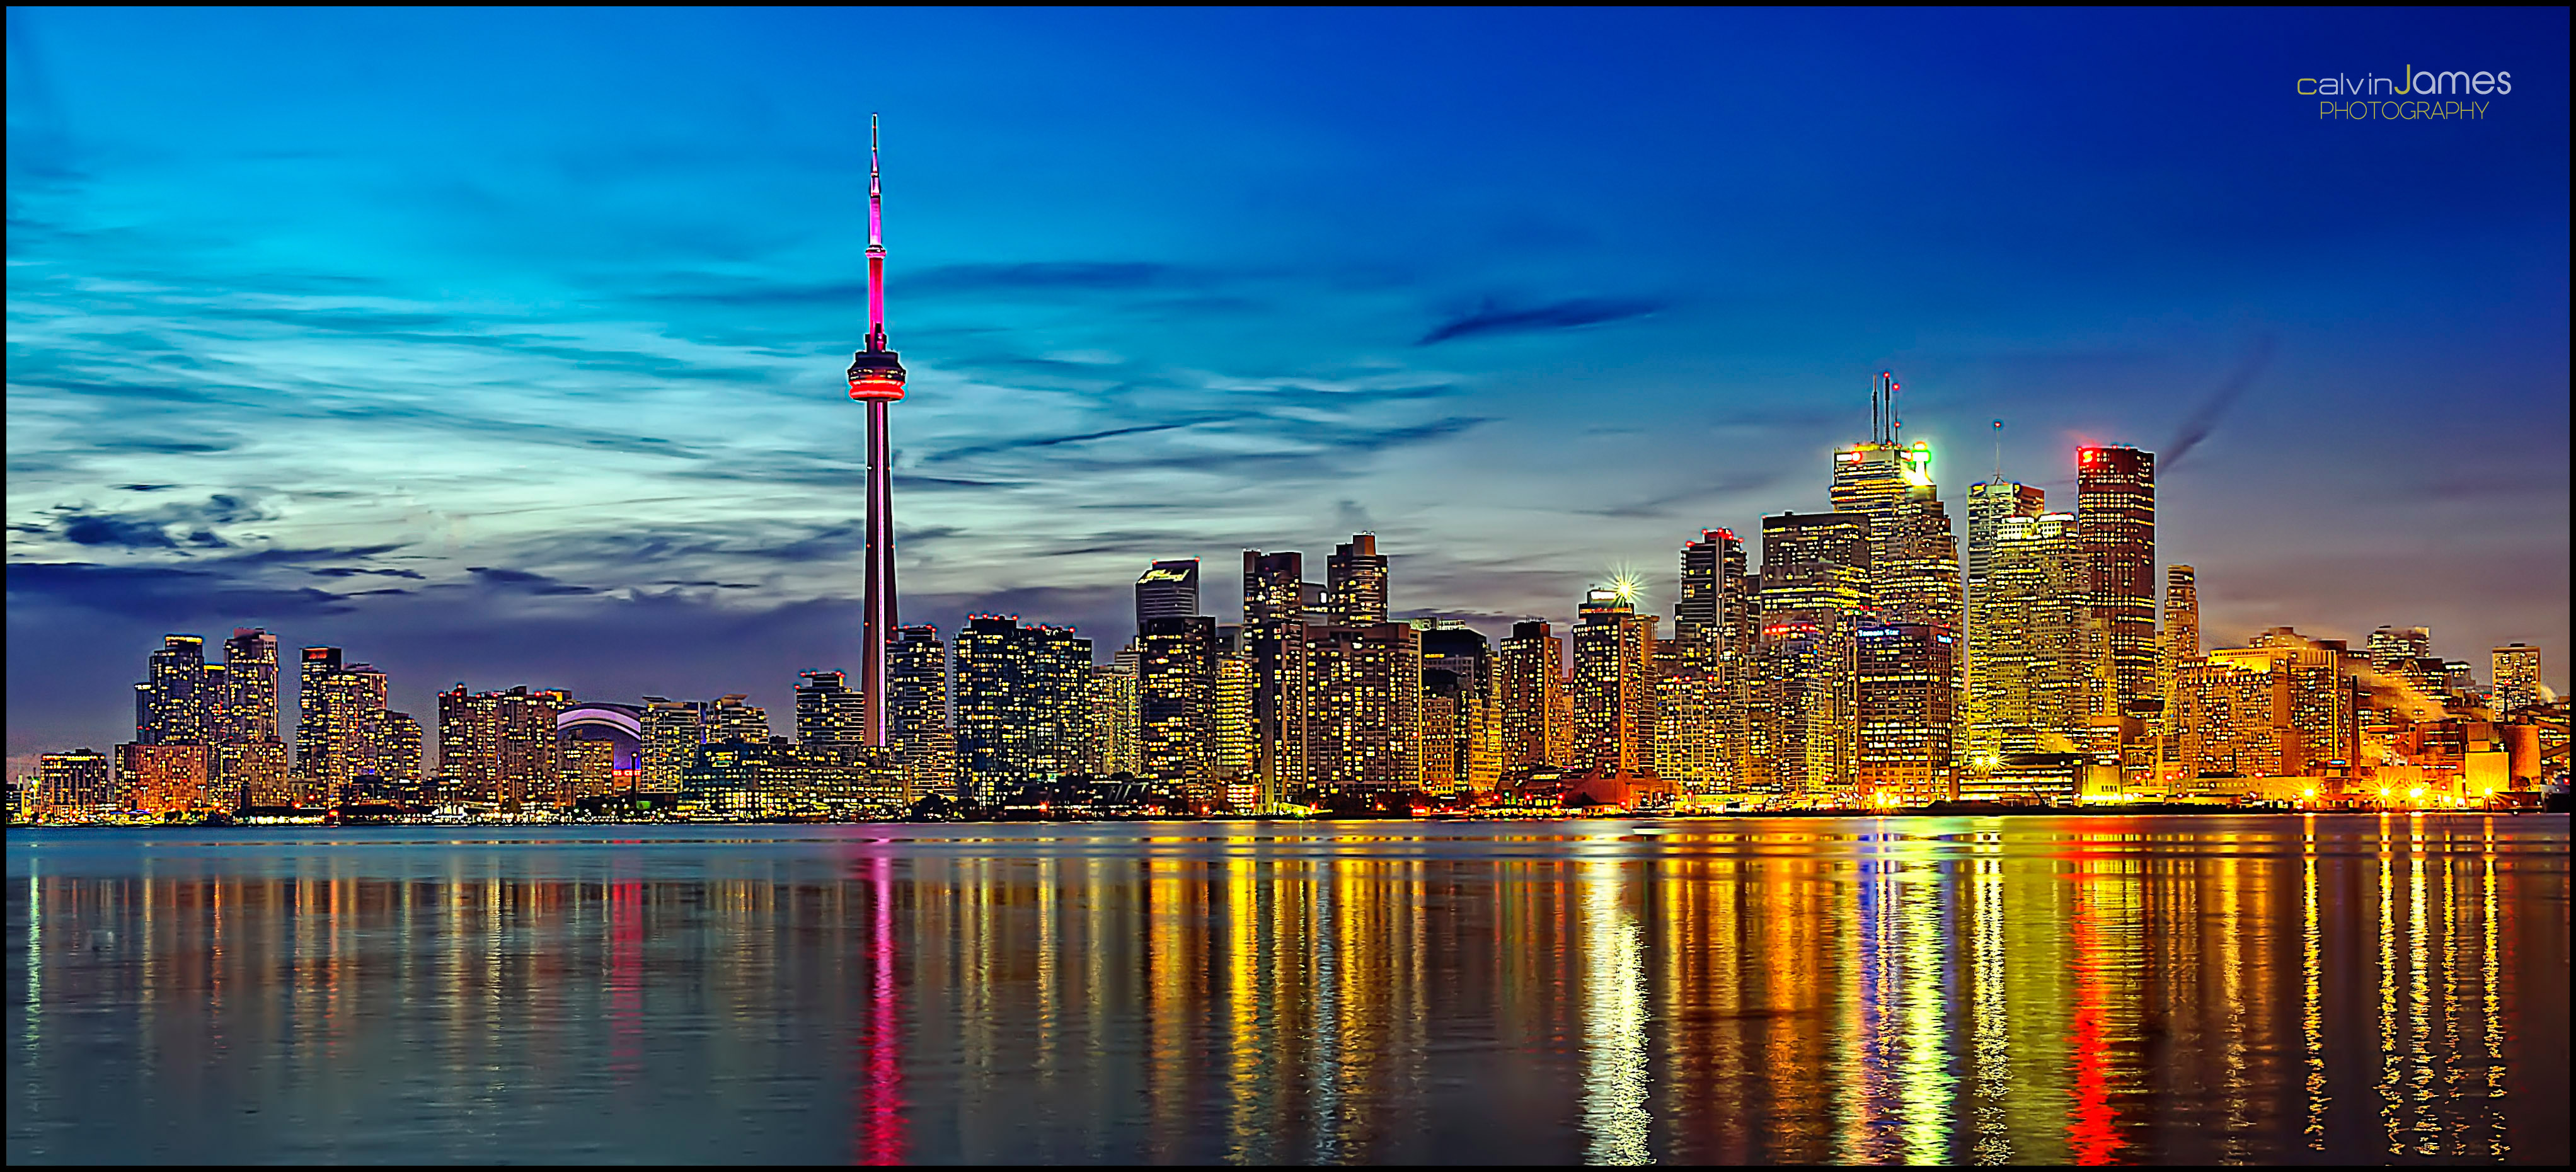 5 secret places in <b>Toronto</b> to view the <b>skyline</b>